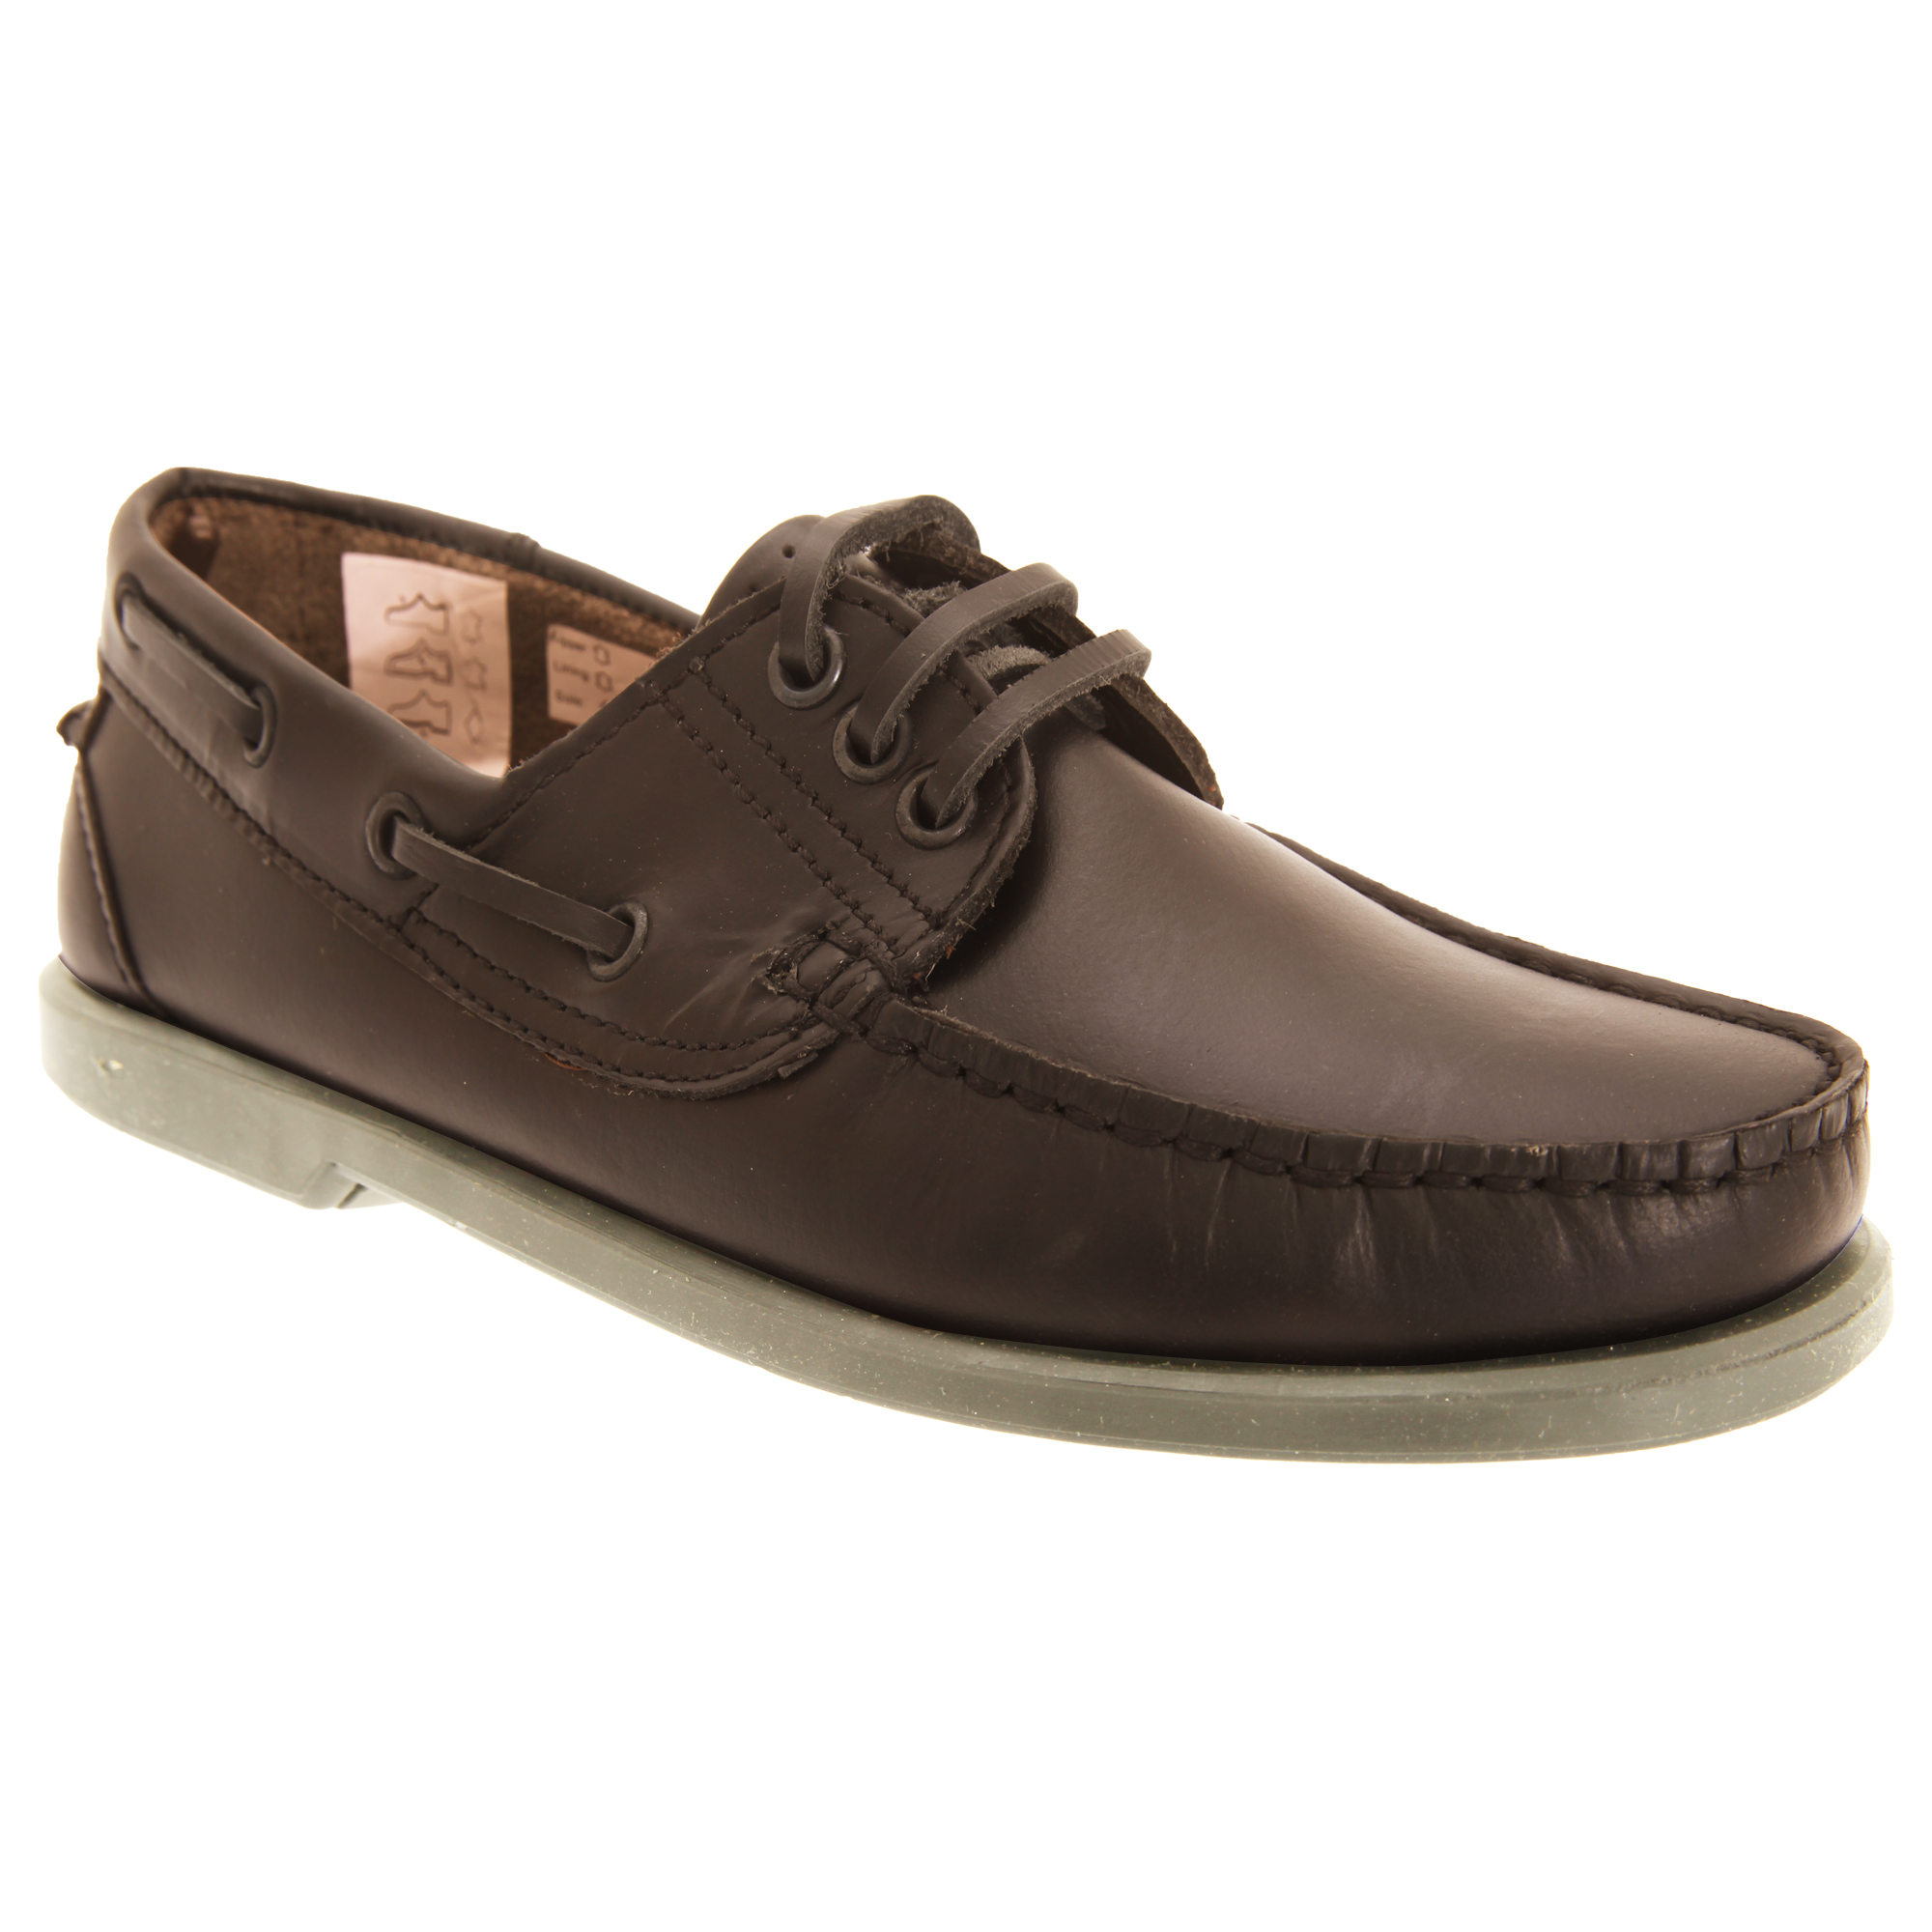 dek mens leather casual lace up slip on moccasin boat